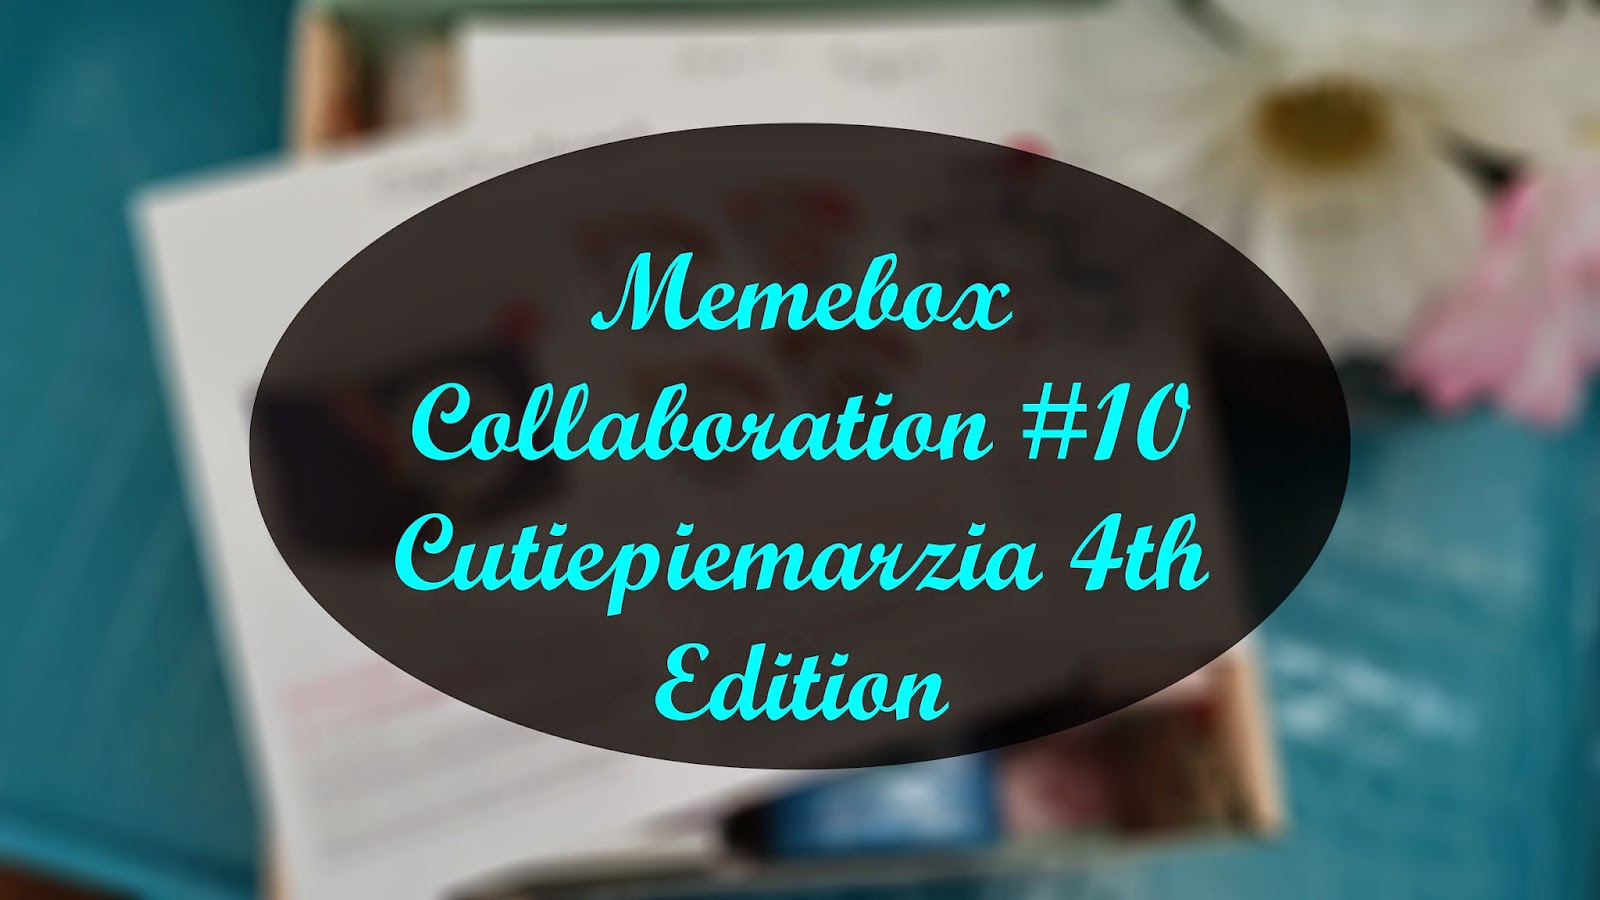 Unboxing: Memebox Collaboration #10 Cutiepiemarzia 4th edition